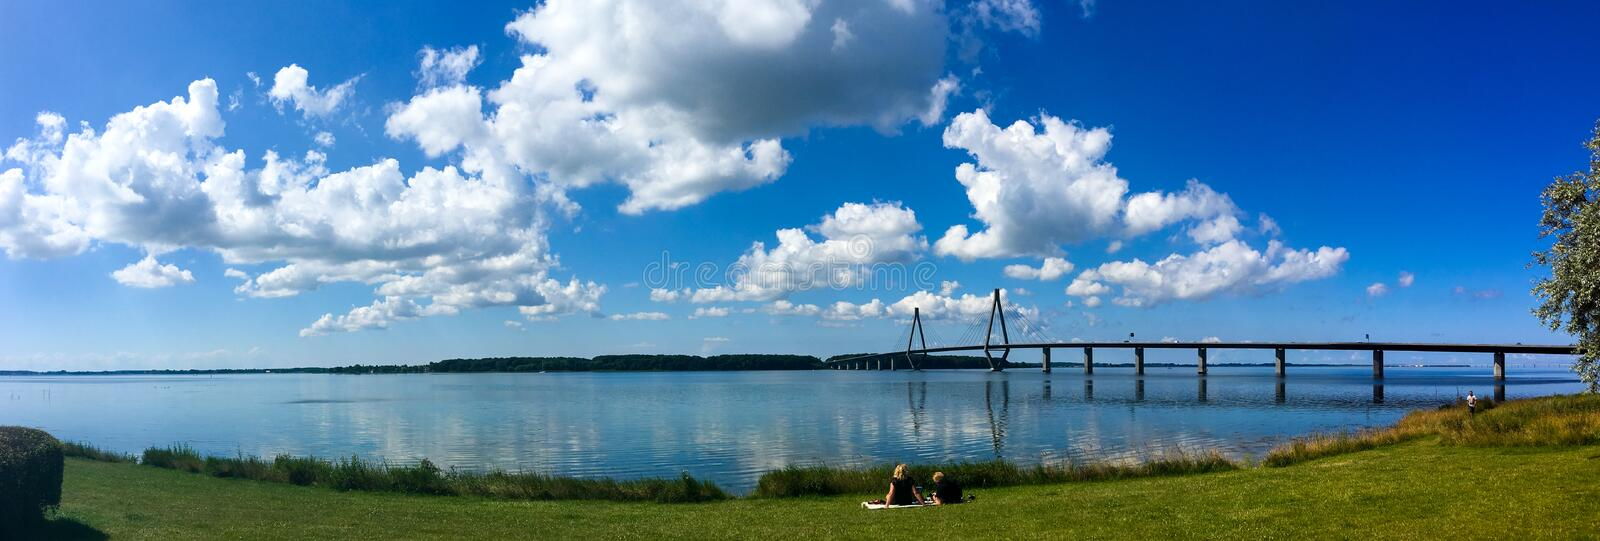 A loving couple having a summer picnic next to the water and the Faroe Bridges in southern Denmark. Farö, Denmark - July 15, 2017: A panorama showing the Far stock image